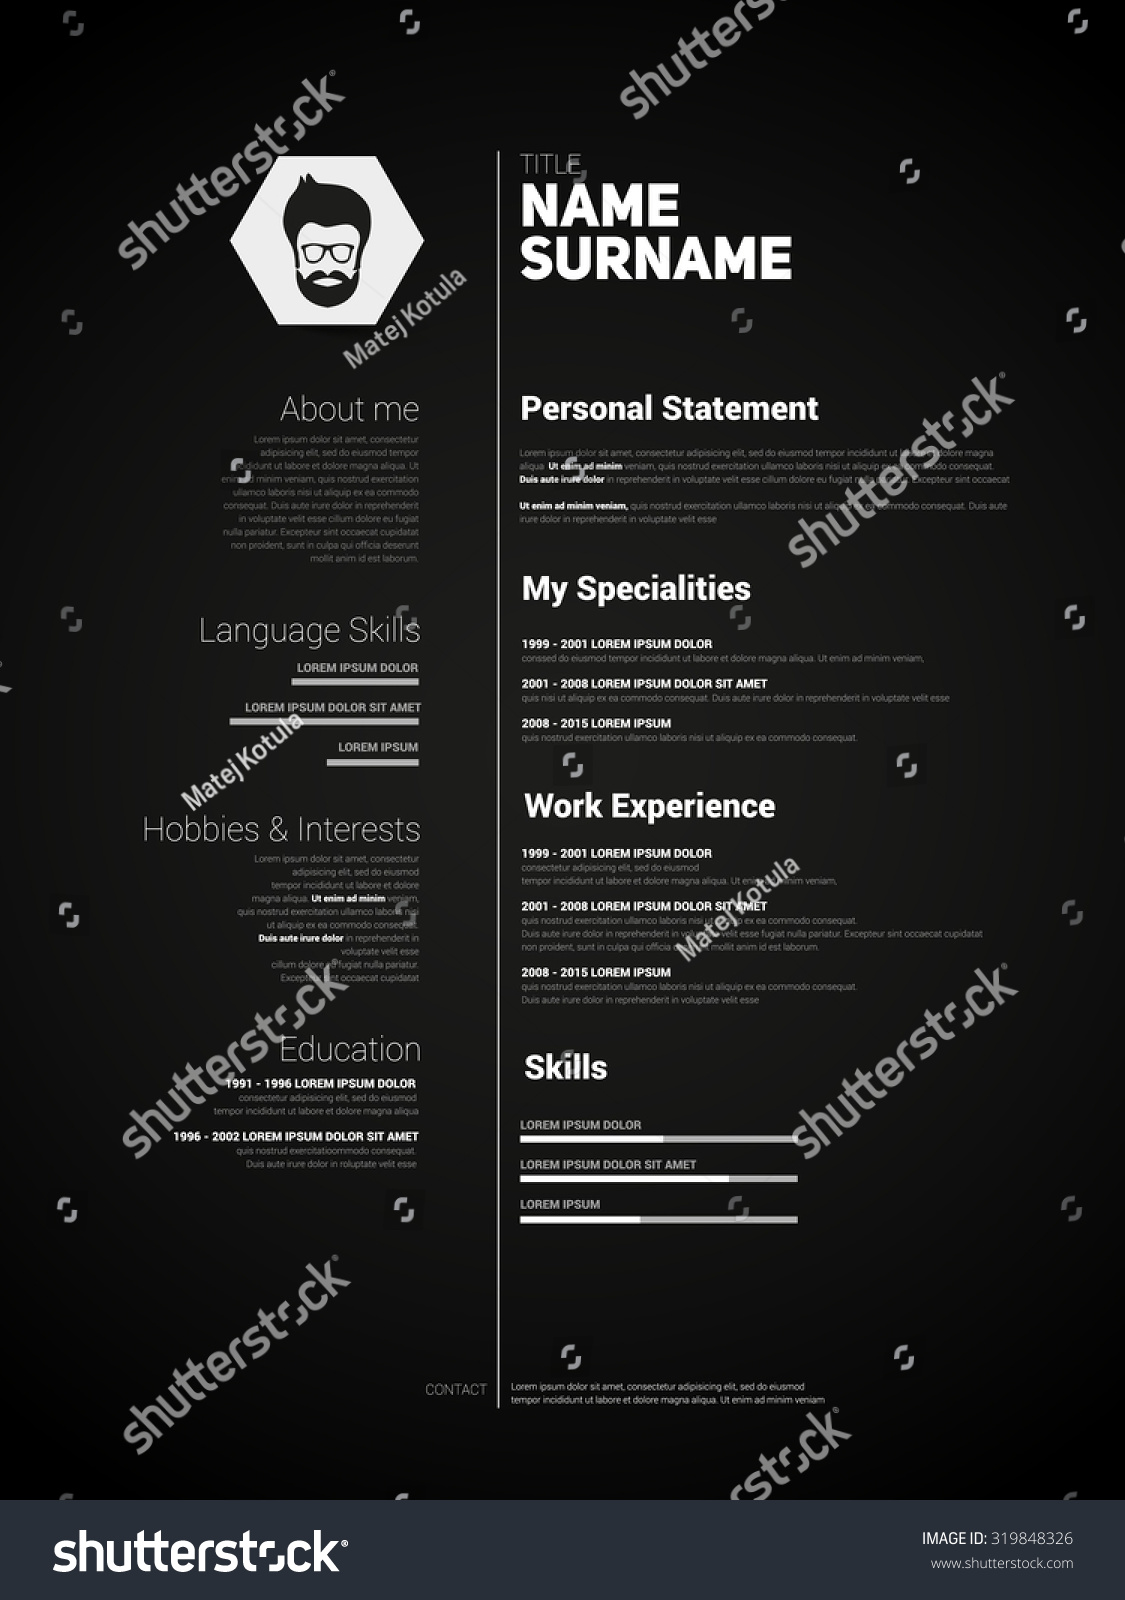 mini st cv resume template simple design vector dark mini st cv resume template simple design vector dark version